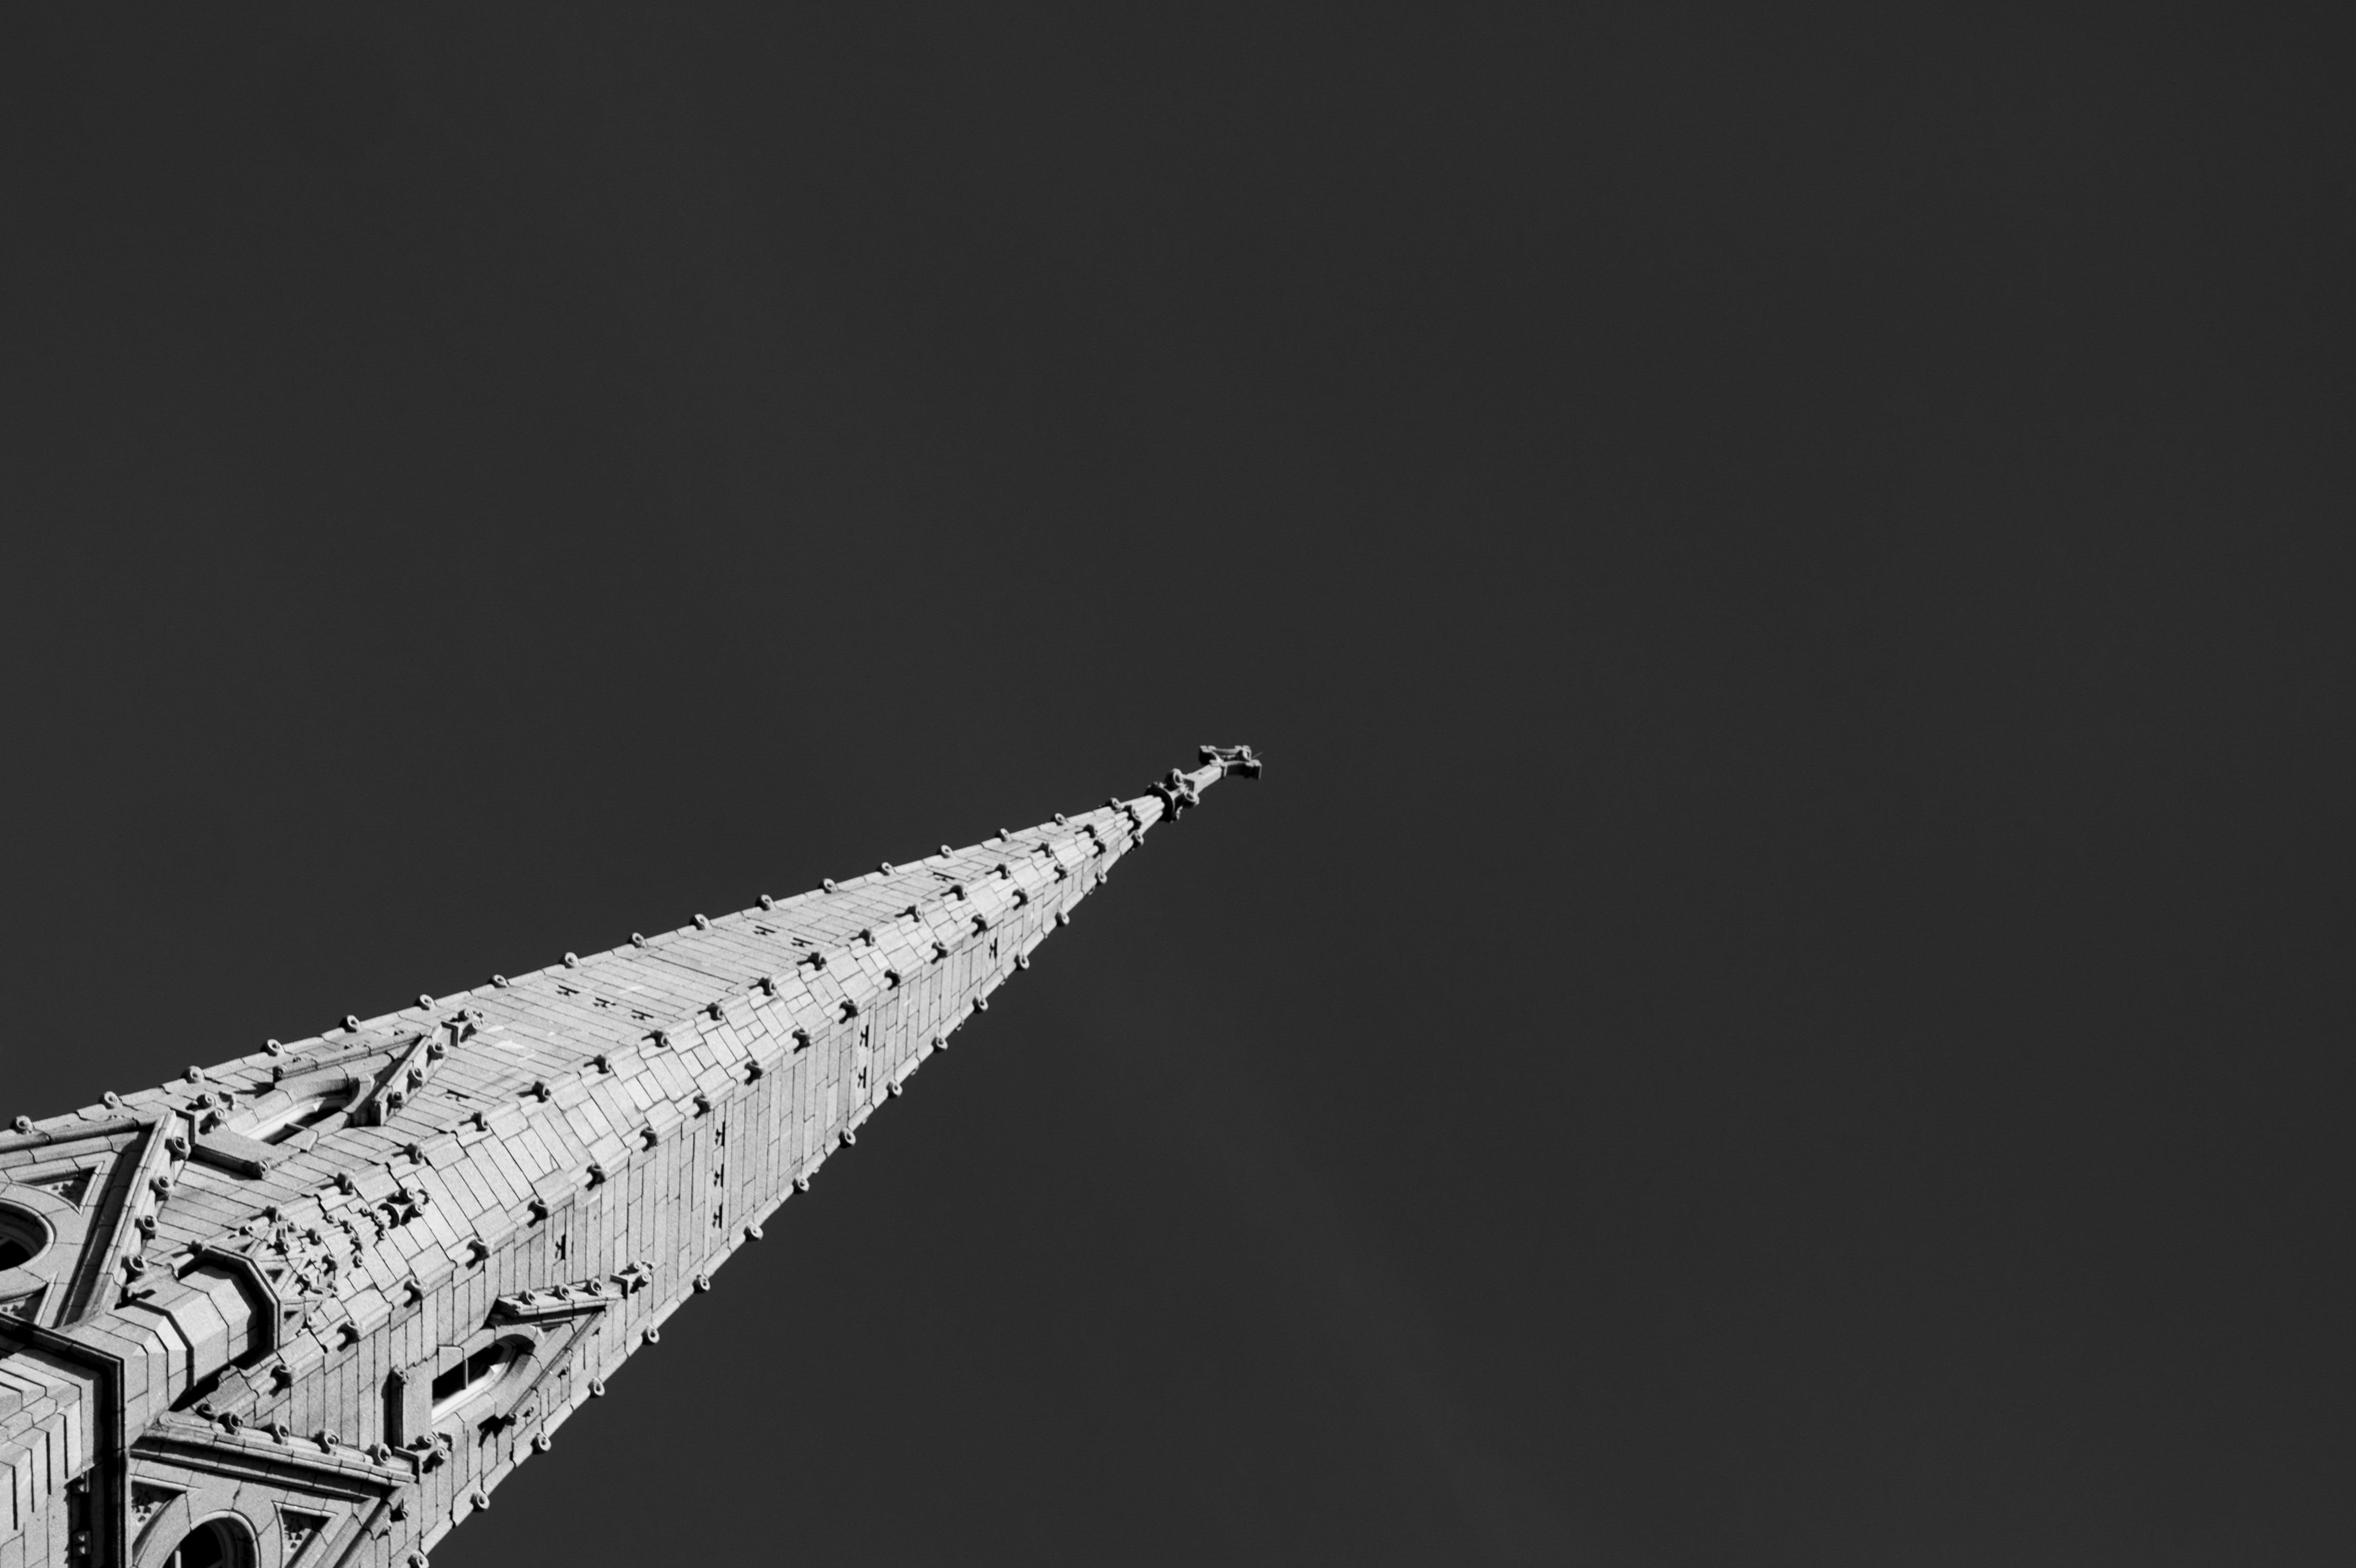 Grayscale Photography of Concrete Tower